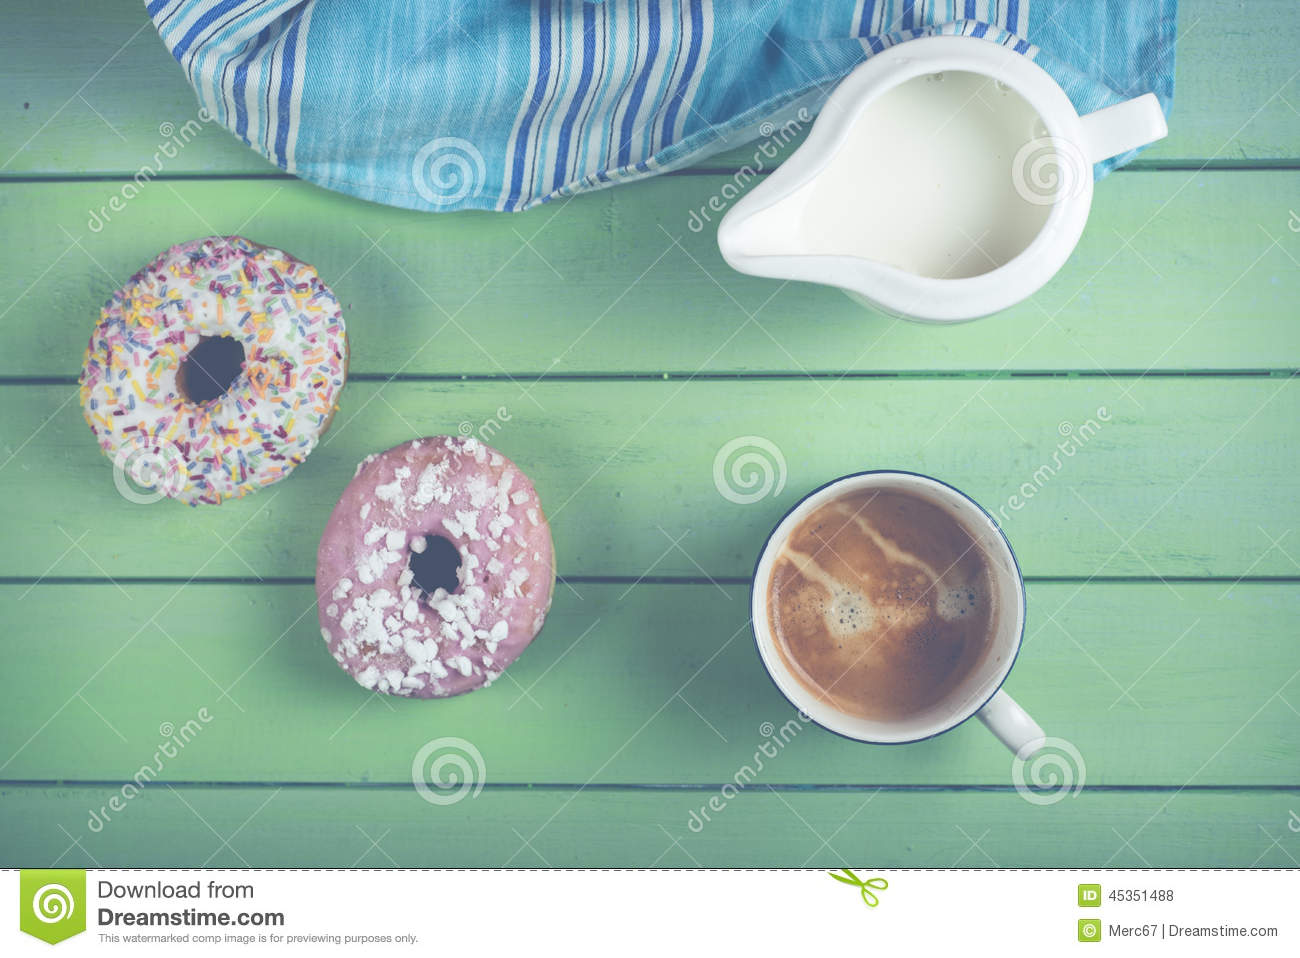 Fresh donuts and coffee on table